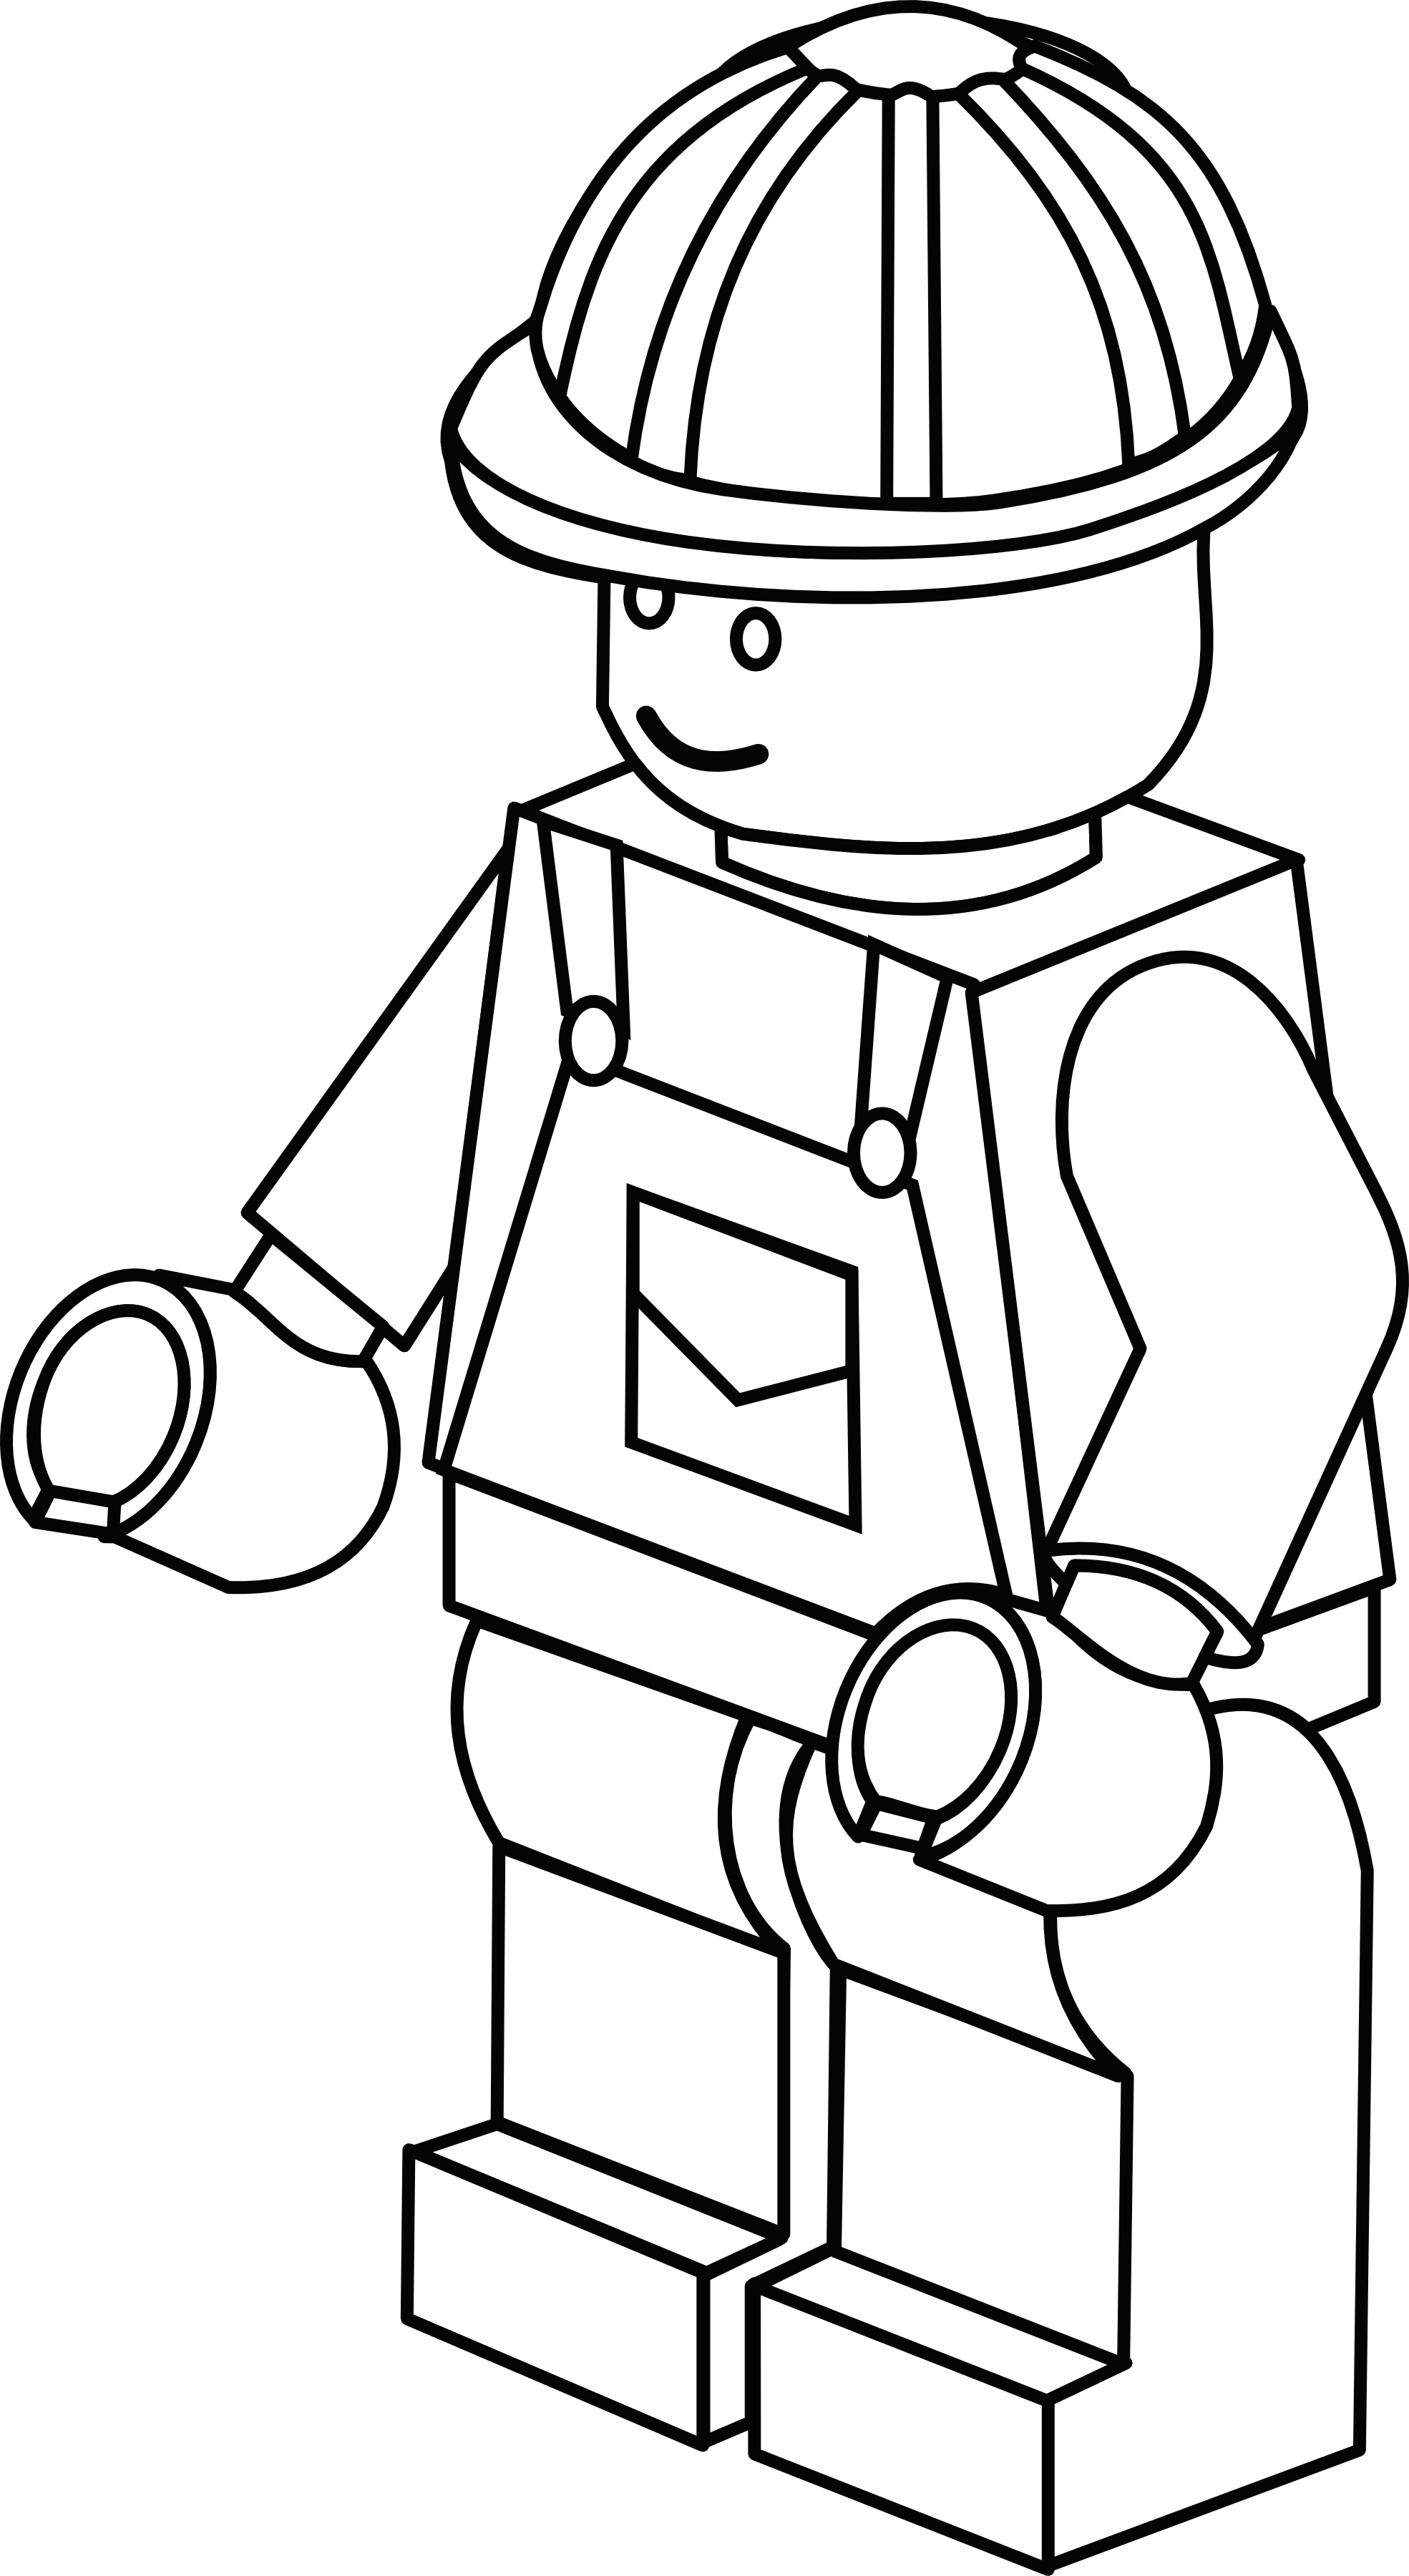 More Complex Lego Figure Colouring Sheet Colour Pages Lego